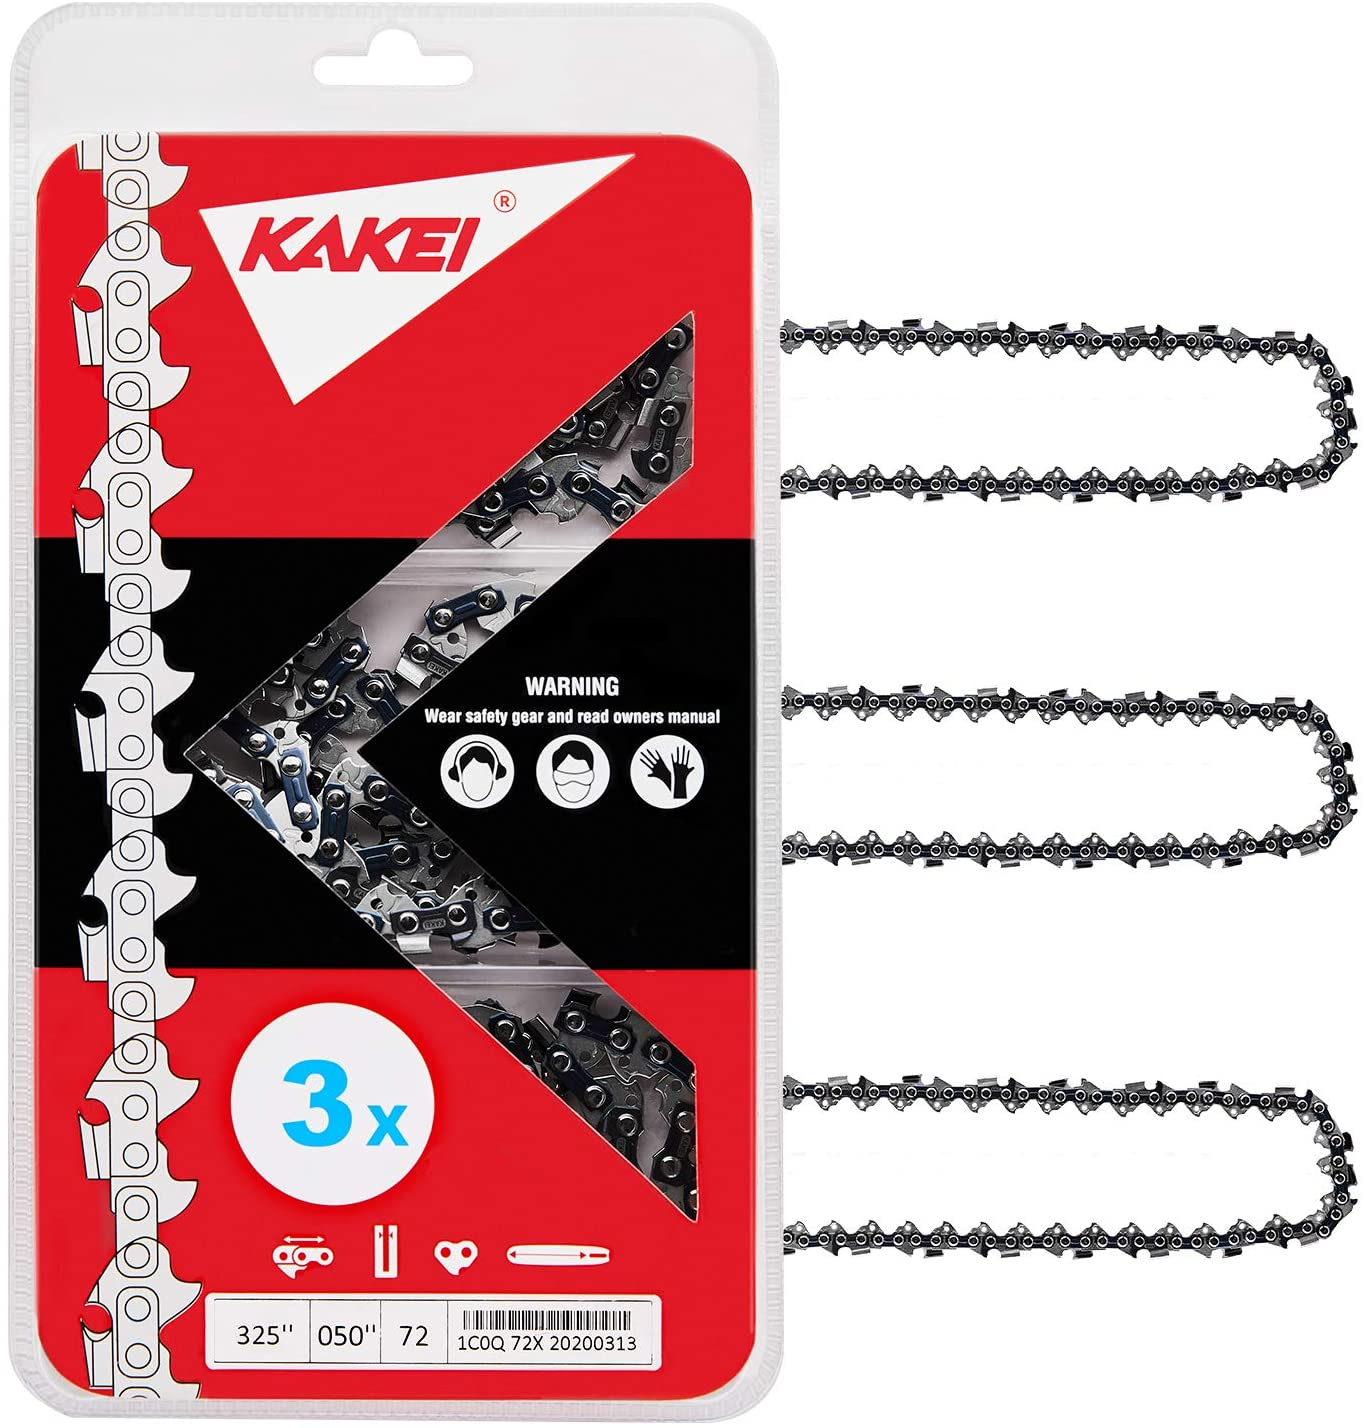 """KAKEI Chainsaw Chain 18-Inch.050"""" Gauge, 0.325"""" Pitch, 72 Drive Links Fits Dolmar, Echo, Homelite, McCulloch, Poulan (3)"""